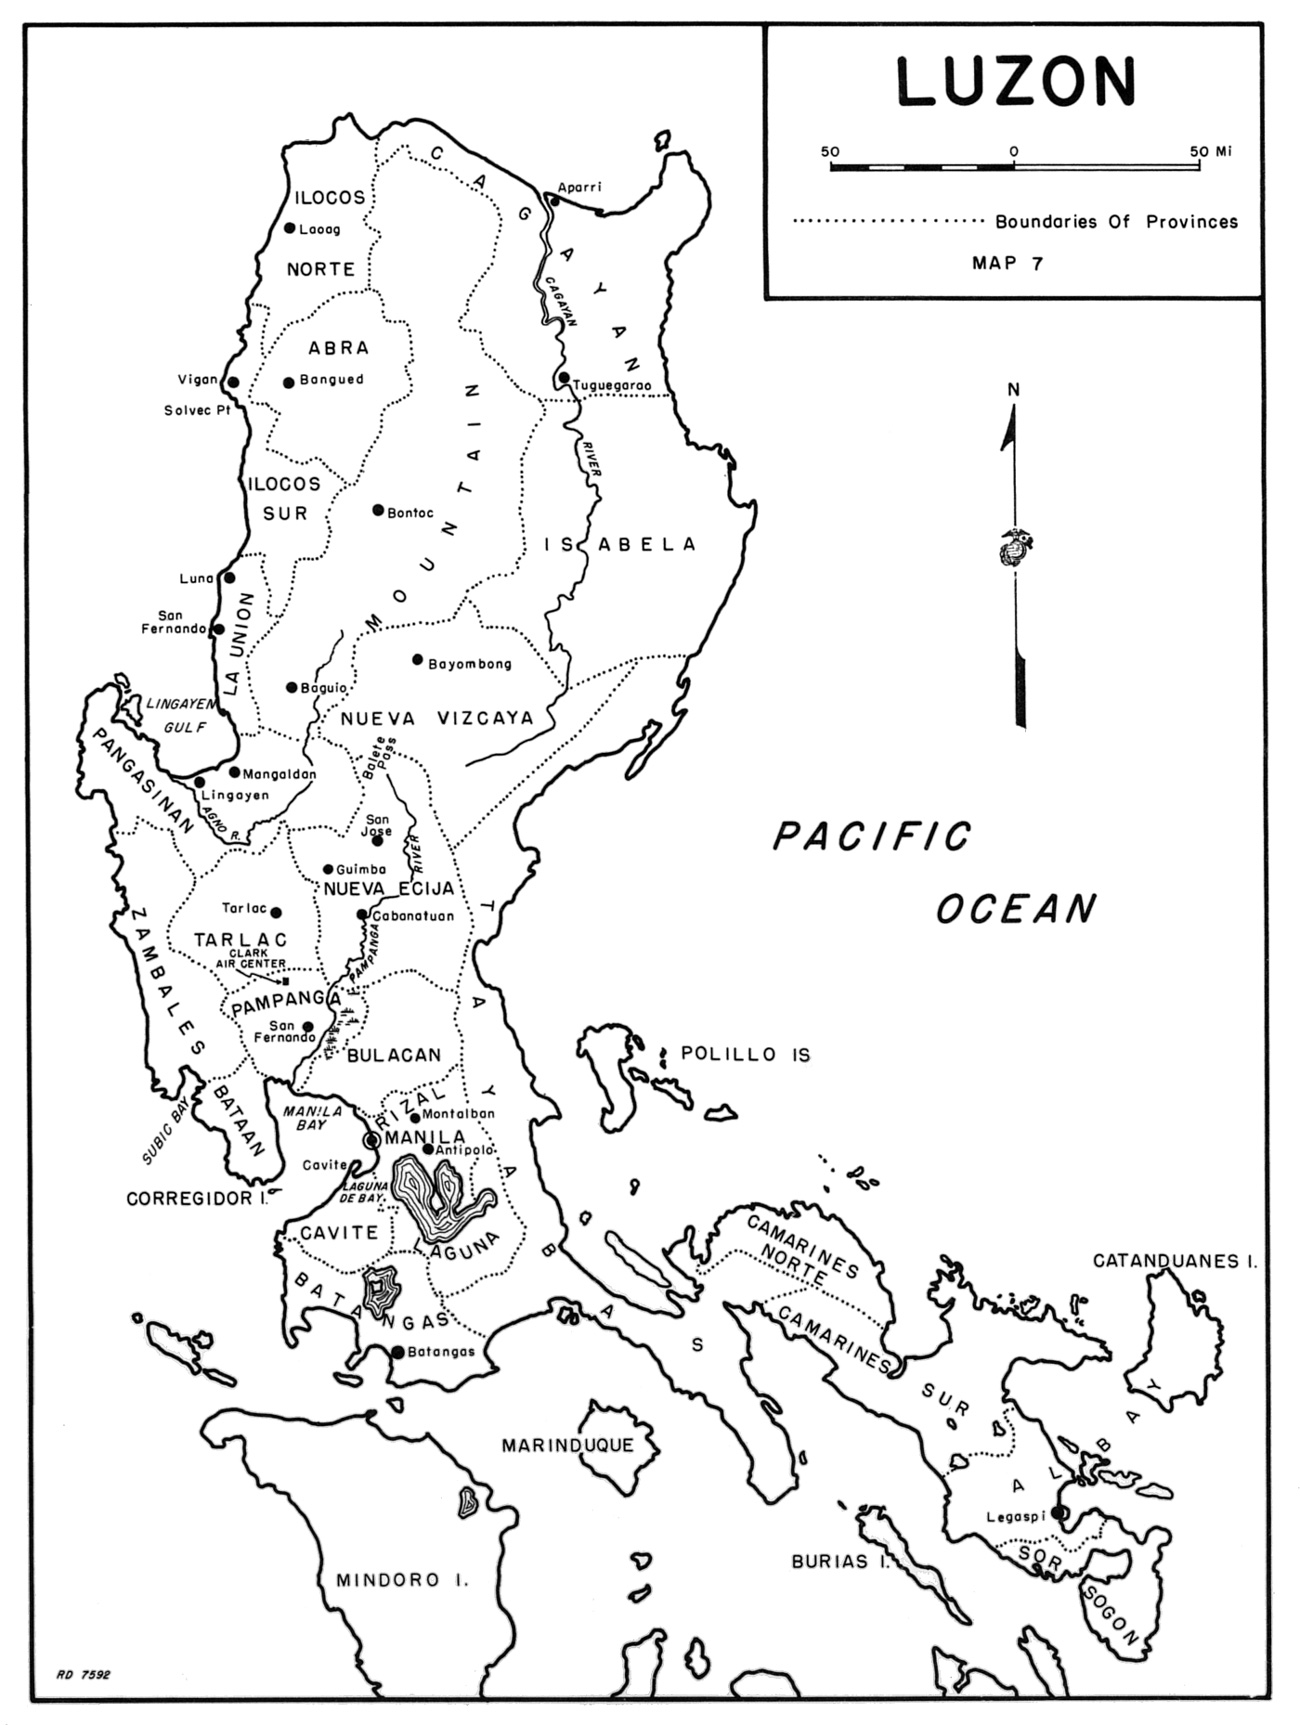 hyperwar usmc monograph marine aviation in the philippines Sample Cover Letters for Employment see map 7